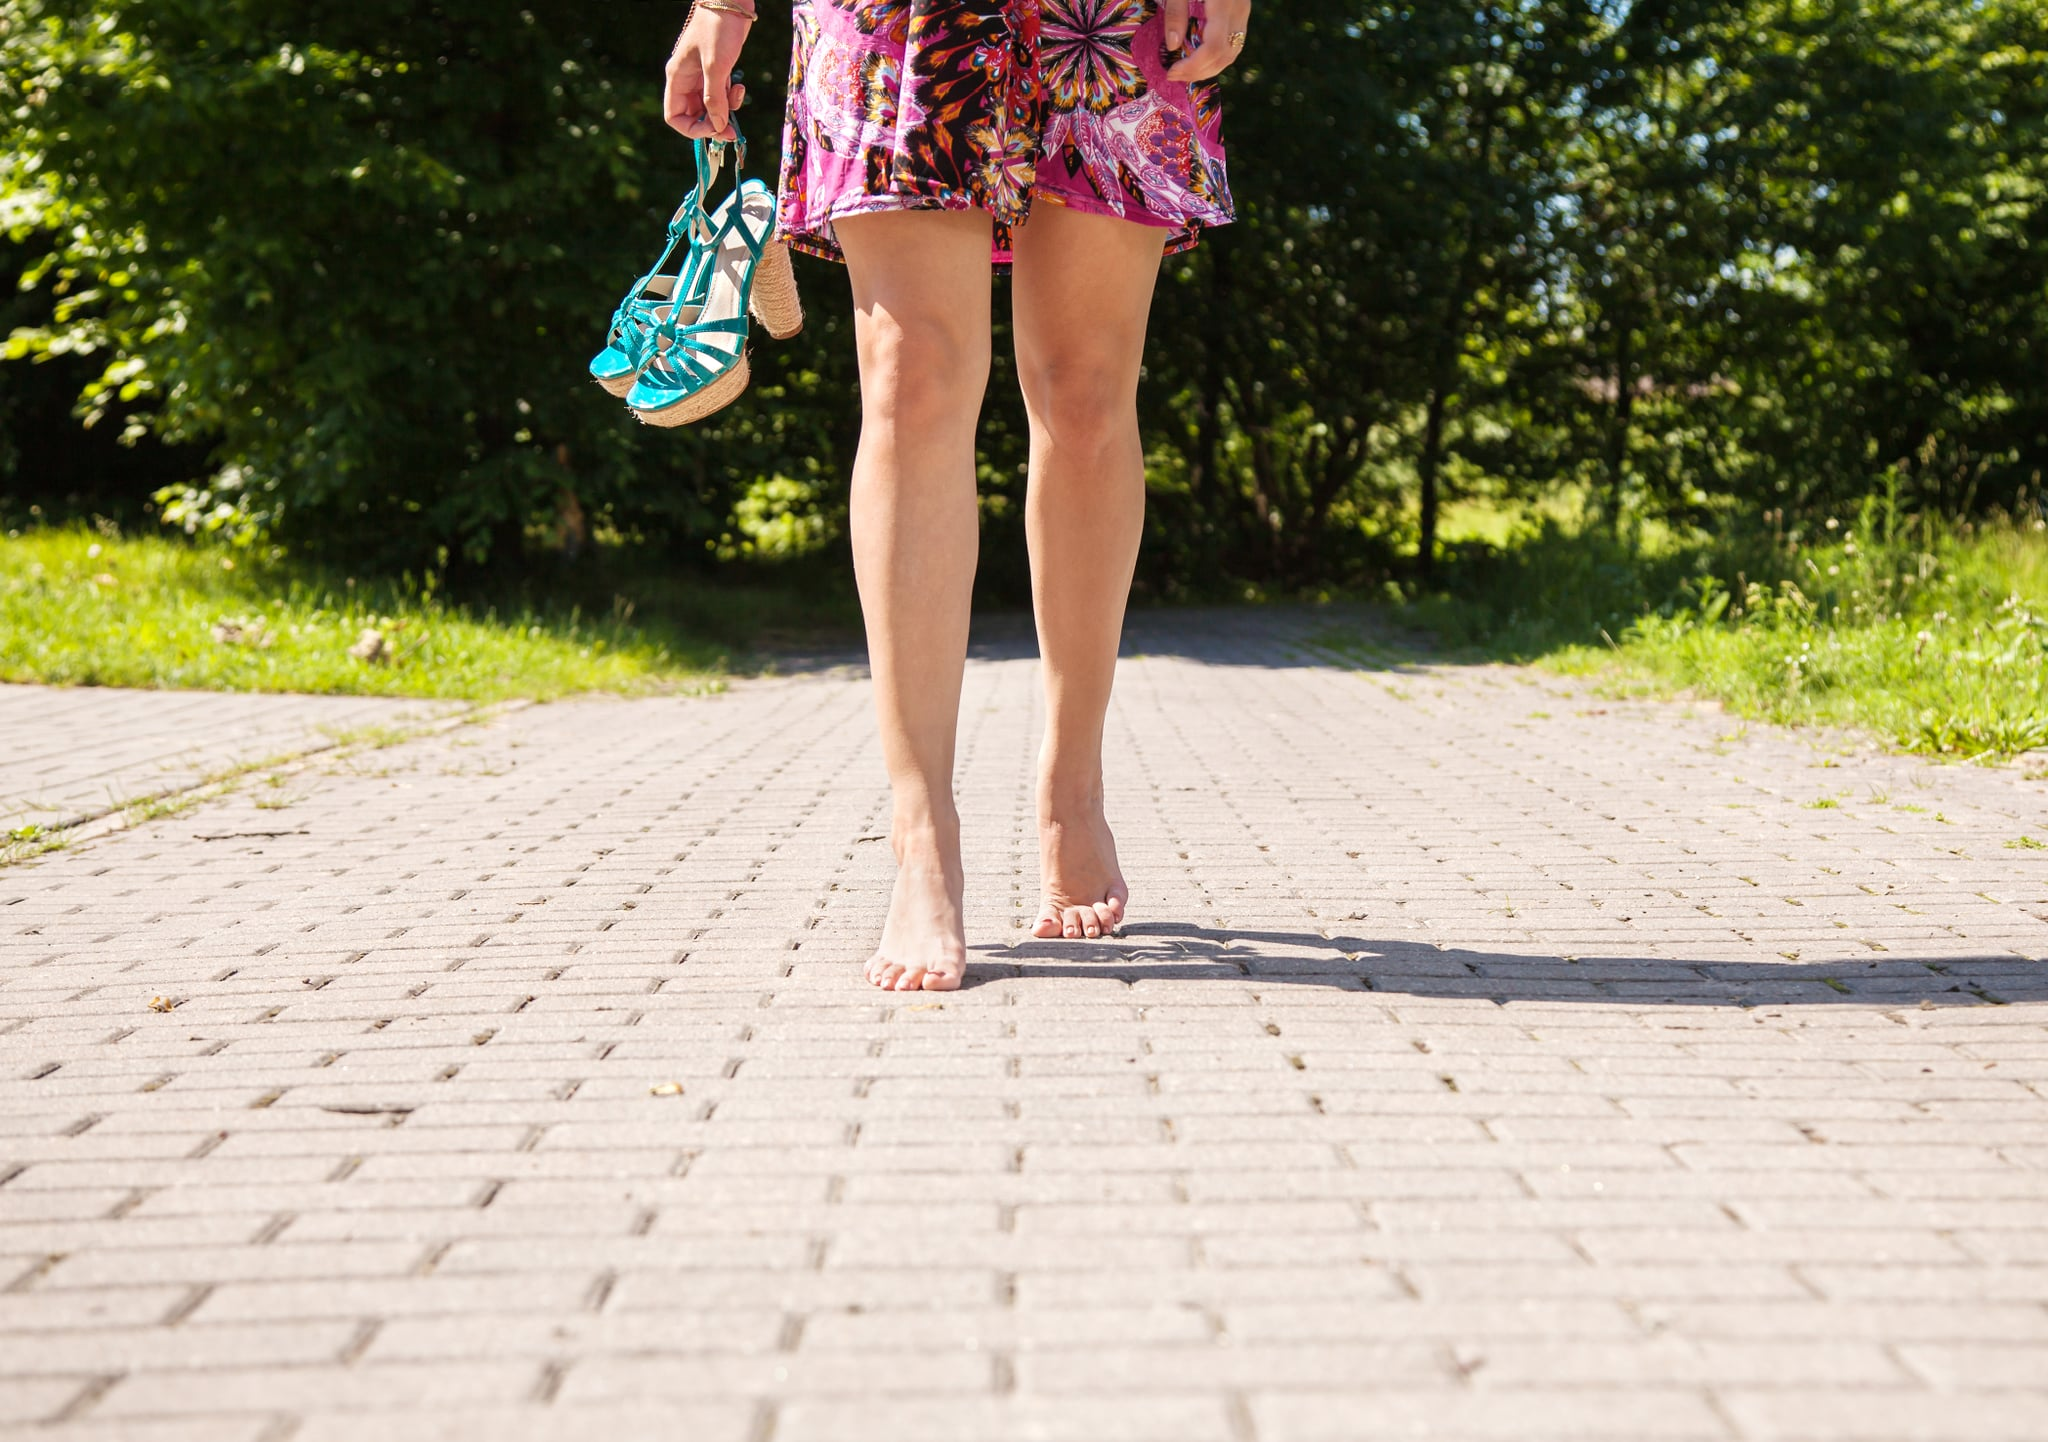 """The Morning After Casual Sex Isn't Embarrassing, So Let's All Stop Calling It the """"Walk of Shame"""""""